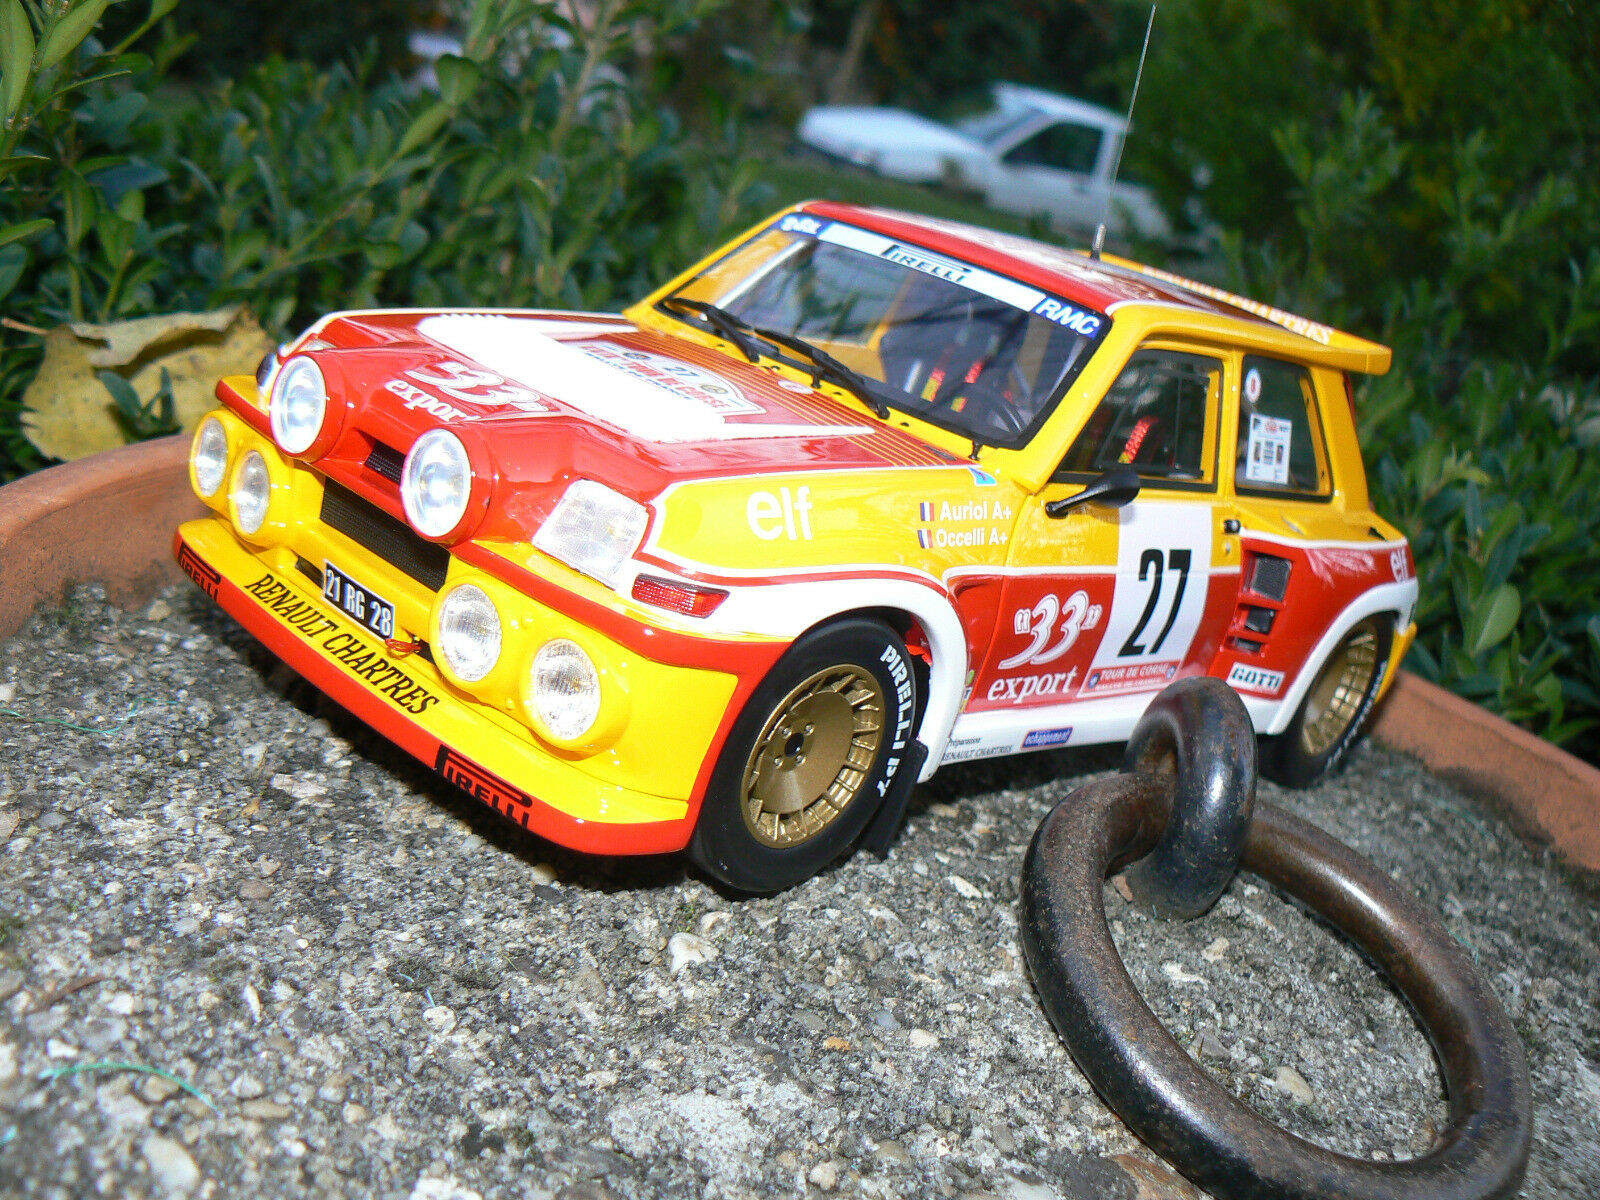 renault 5 r5 maxi maxi maxi turbo 33 export auriol 1/18 otto ottomobile ottomodels boxed | Durable Dans L'utilisation